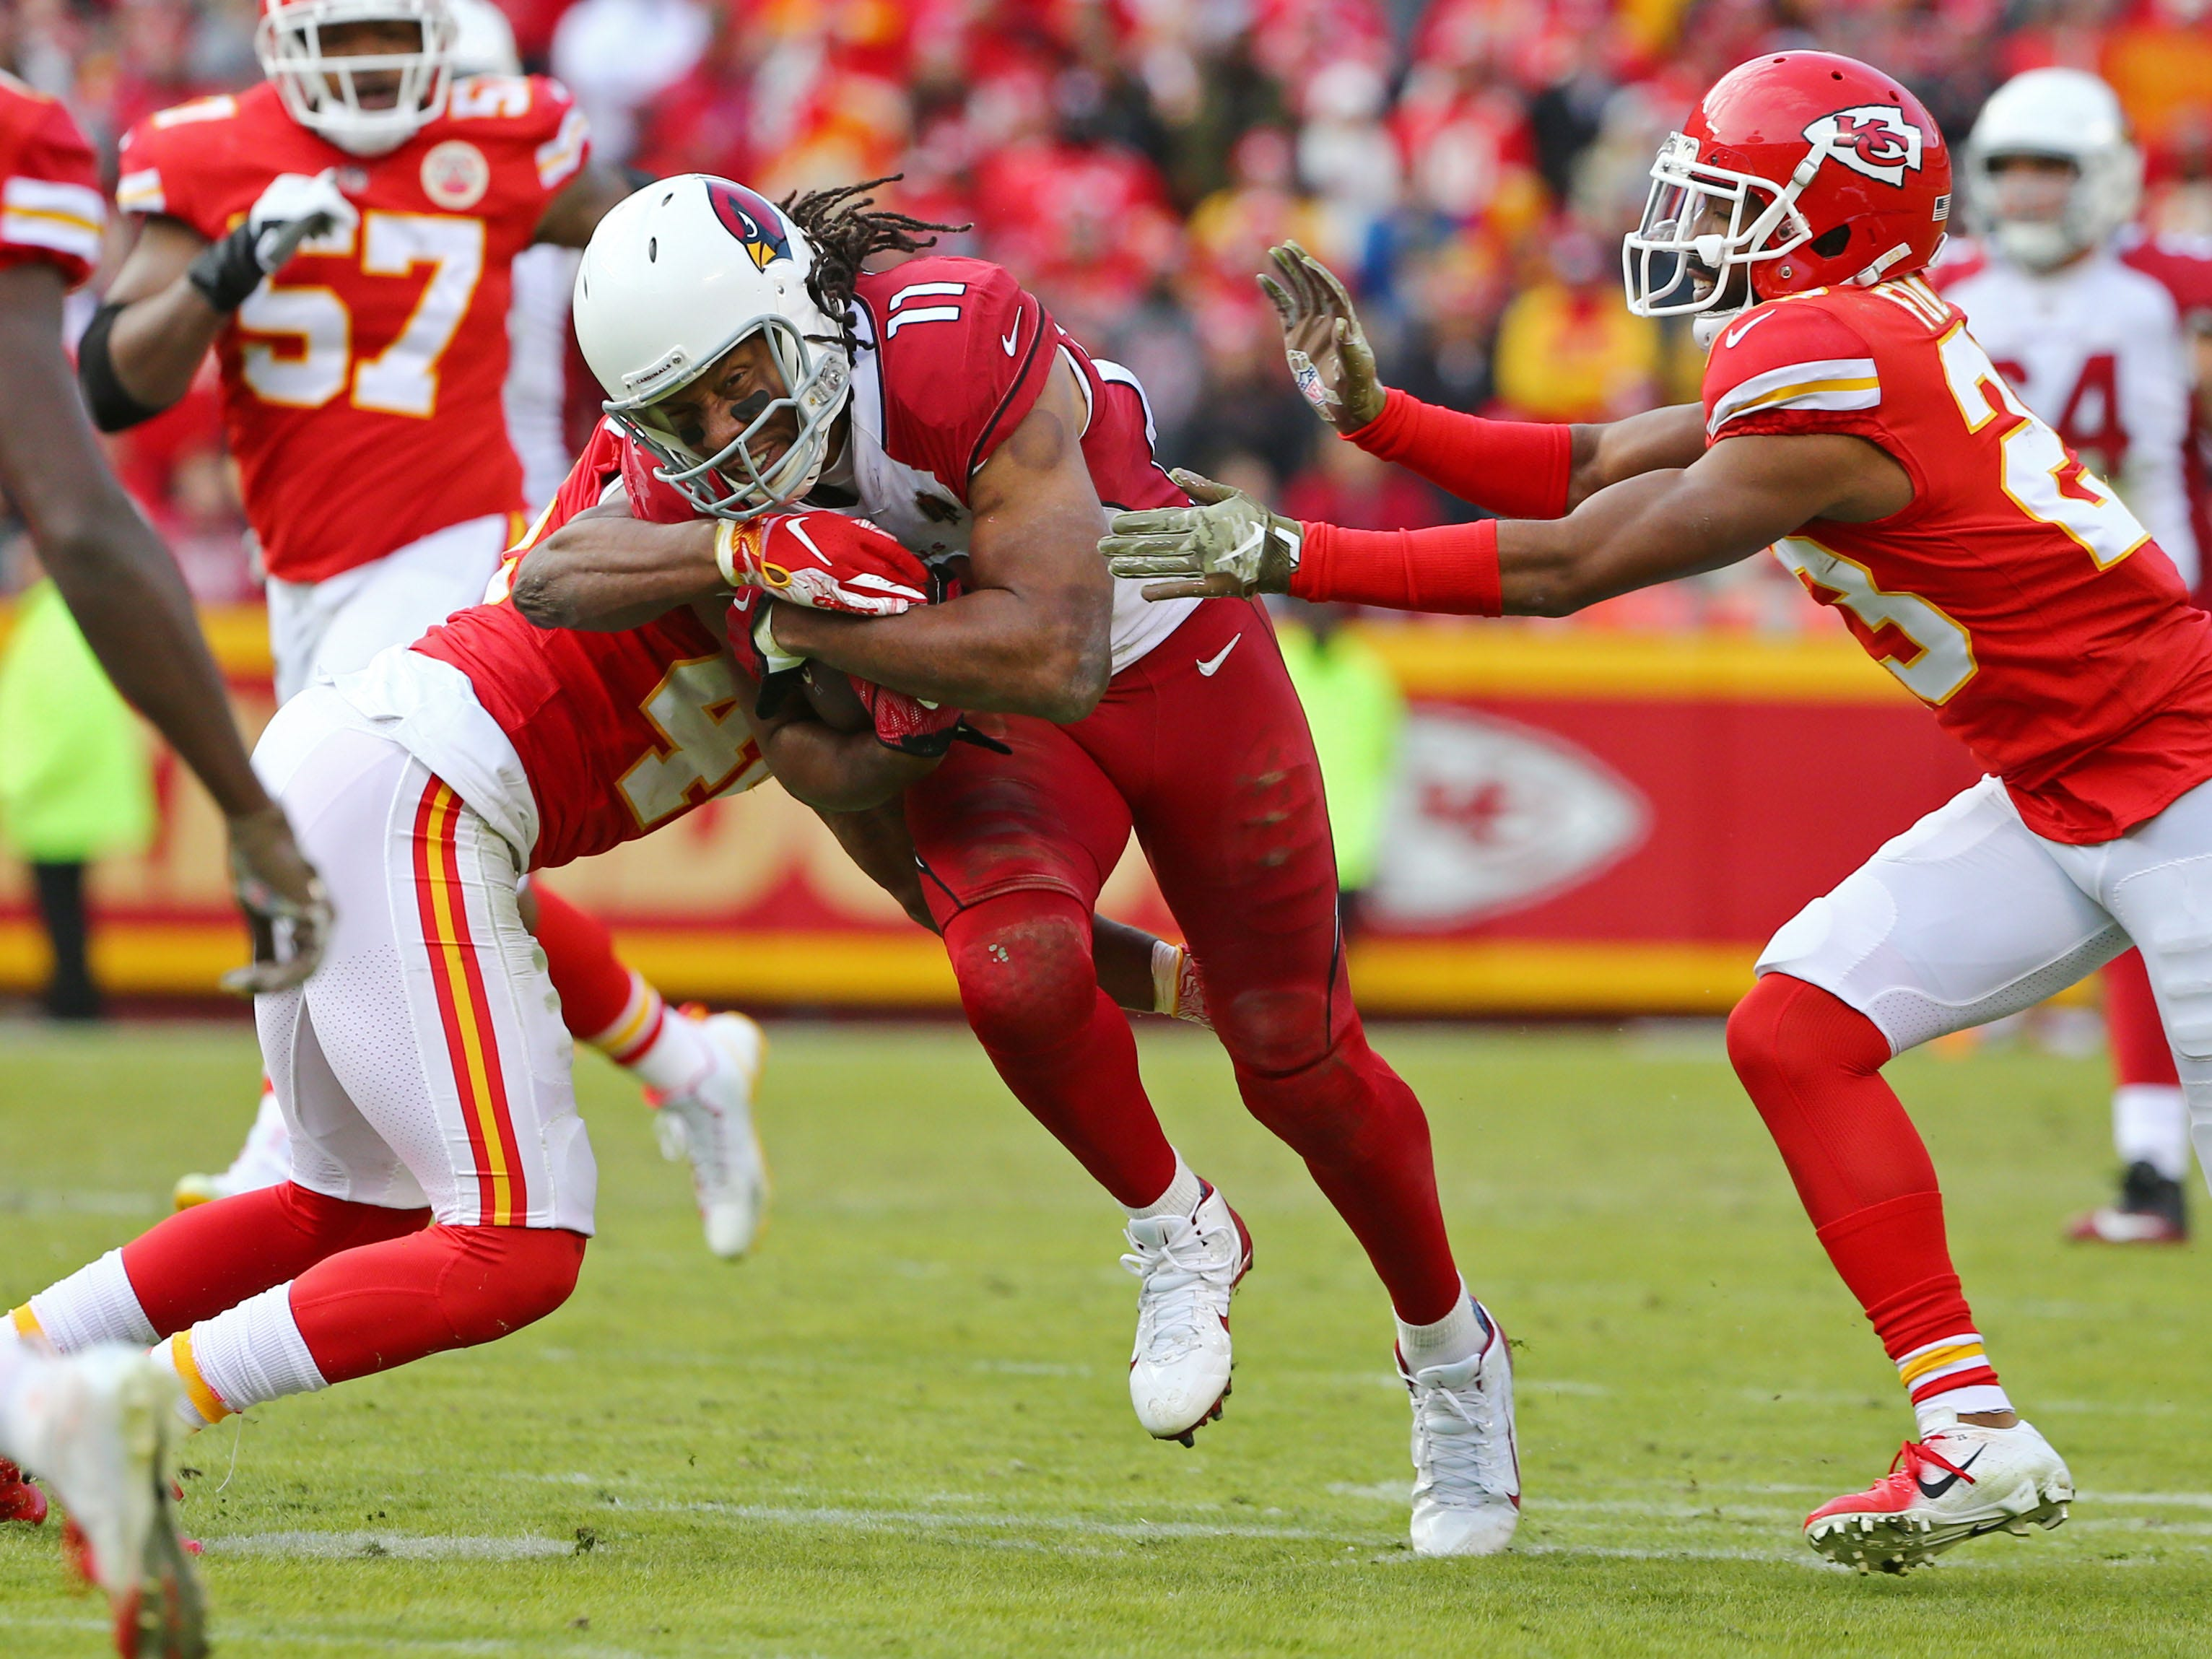 Nov 11, 2018; Kansas City, MO, USA; Arizona Cardinals wide receiver Larry Fitzgerald (11) is tackled by Kansas City Chiefs linebacker Dorian O'Daniel (44) and cornerback Kendall Fuller (23) in the second half at Arrowhead Stadium. Mandatory Credit: Jay Biggerstaff-USA TODAY Sports